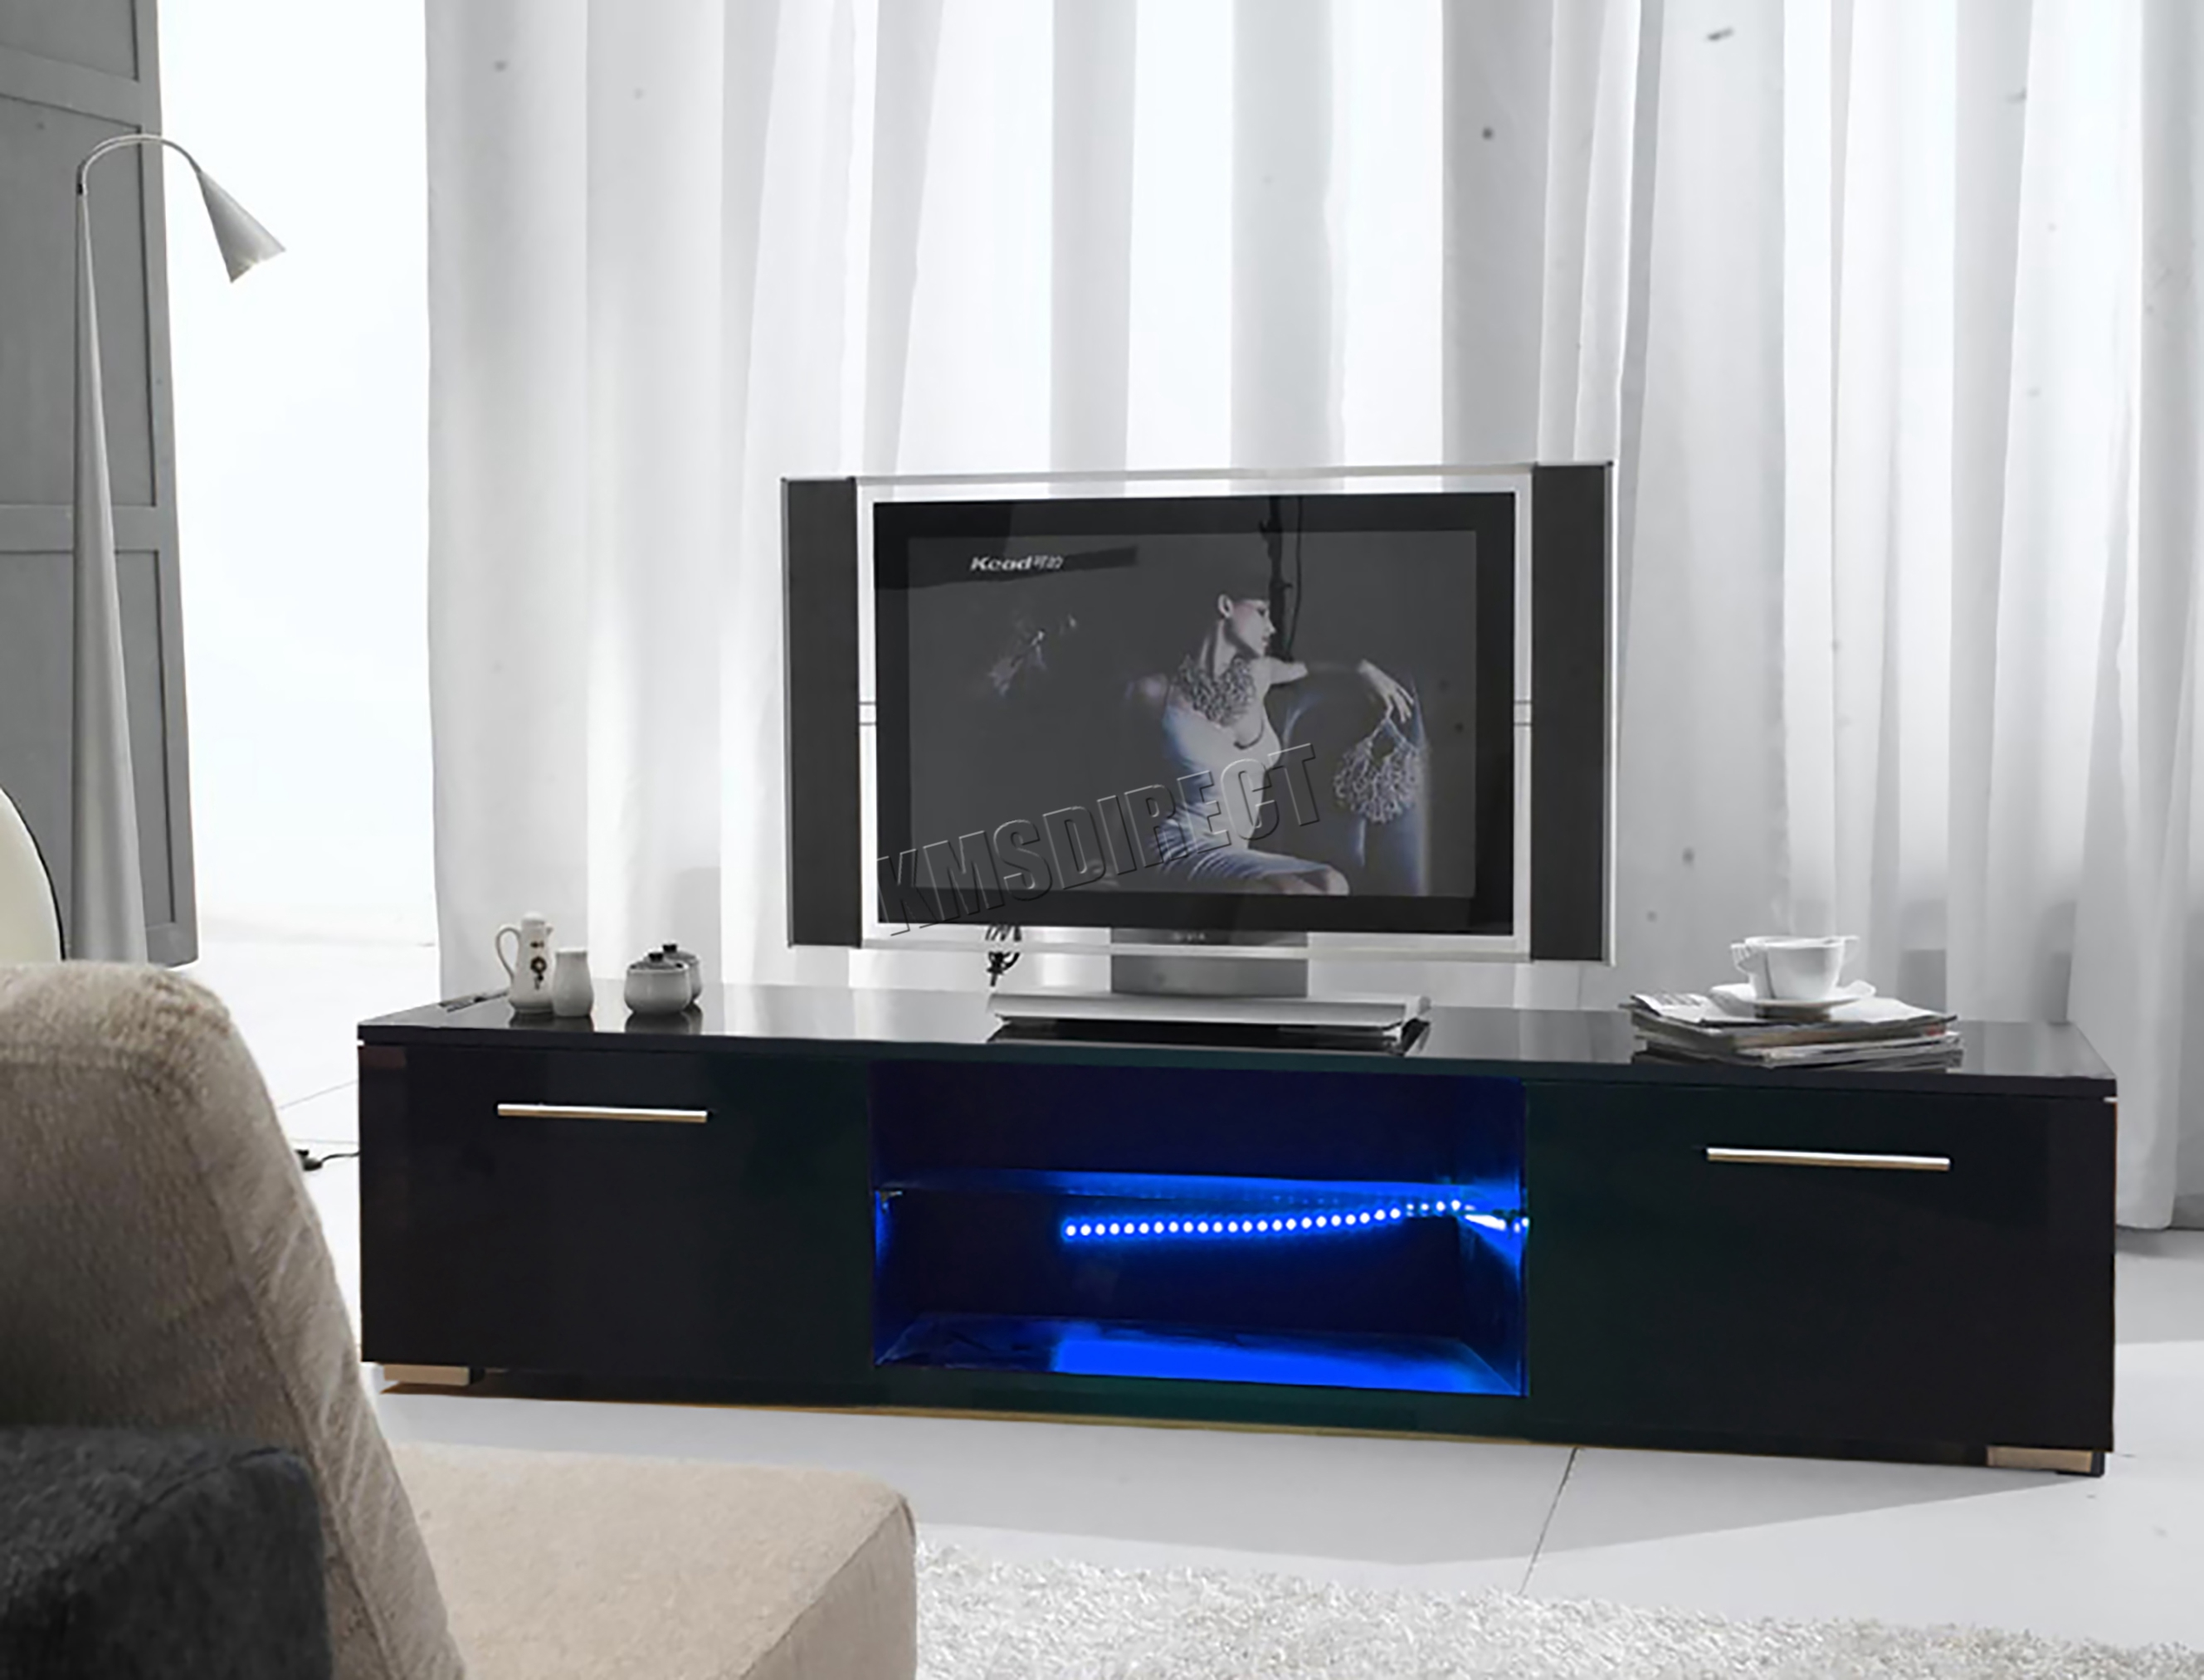 Sentinel Foxhunter Modern High Gloss Matt Tv Cabinet Unit Stand Black Rgb Led Light Tvc12